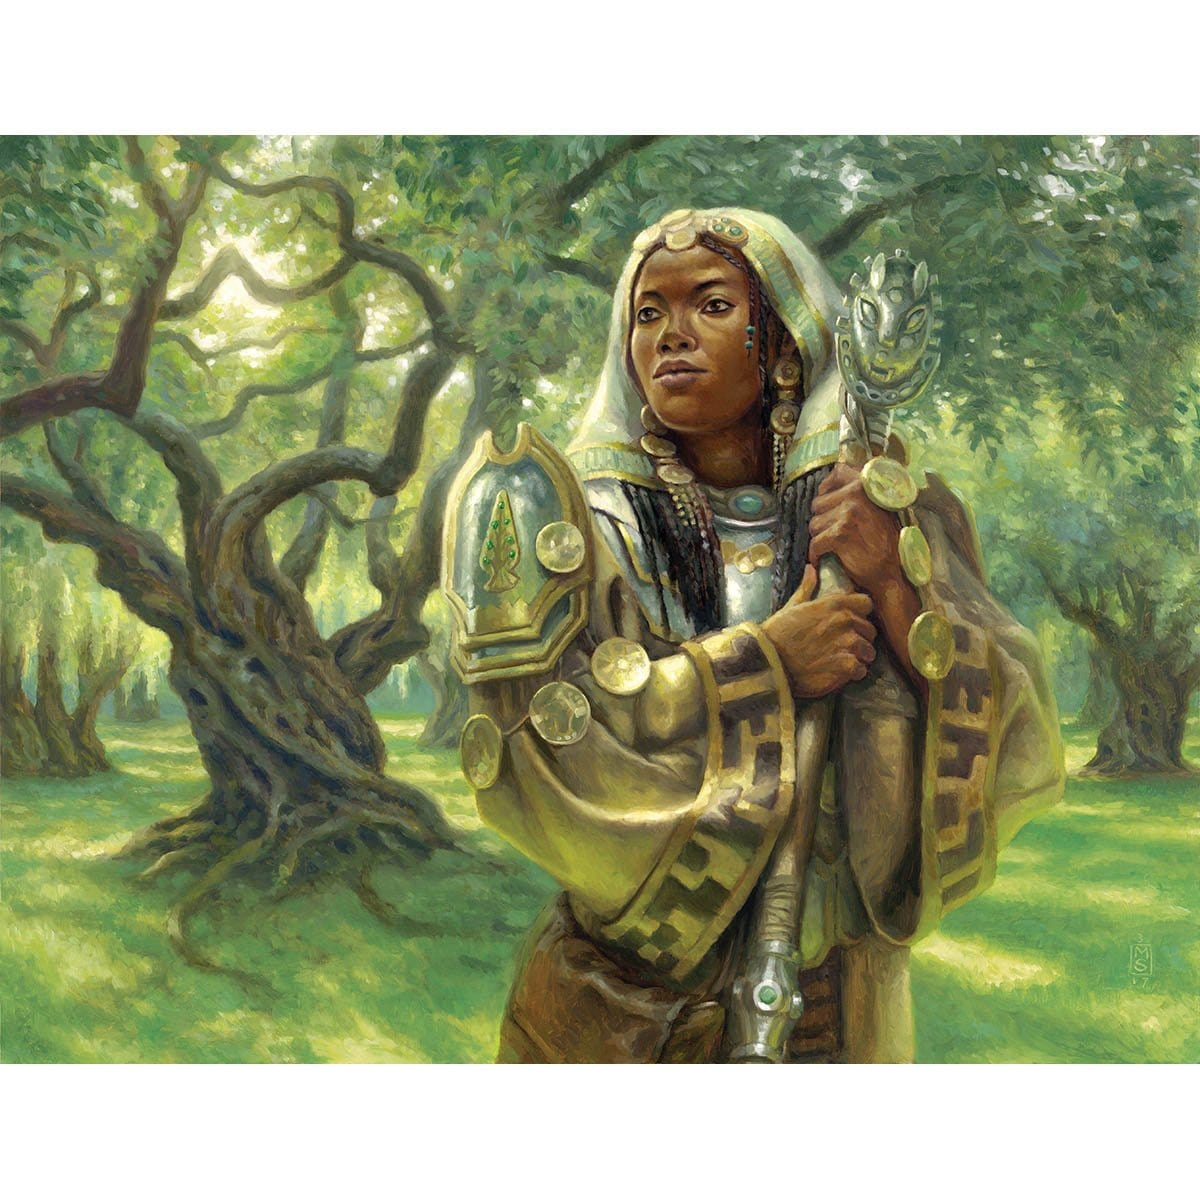 Noble Hierarch Print - Print - Original Magic Art - Accessories for Magic the Gathering and other card games